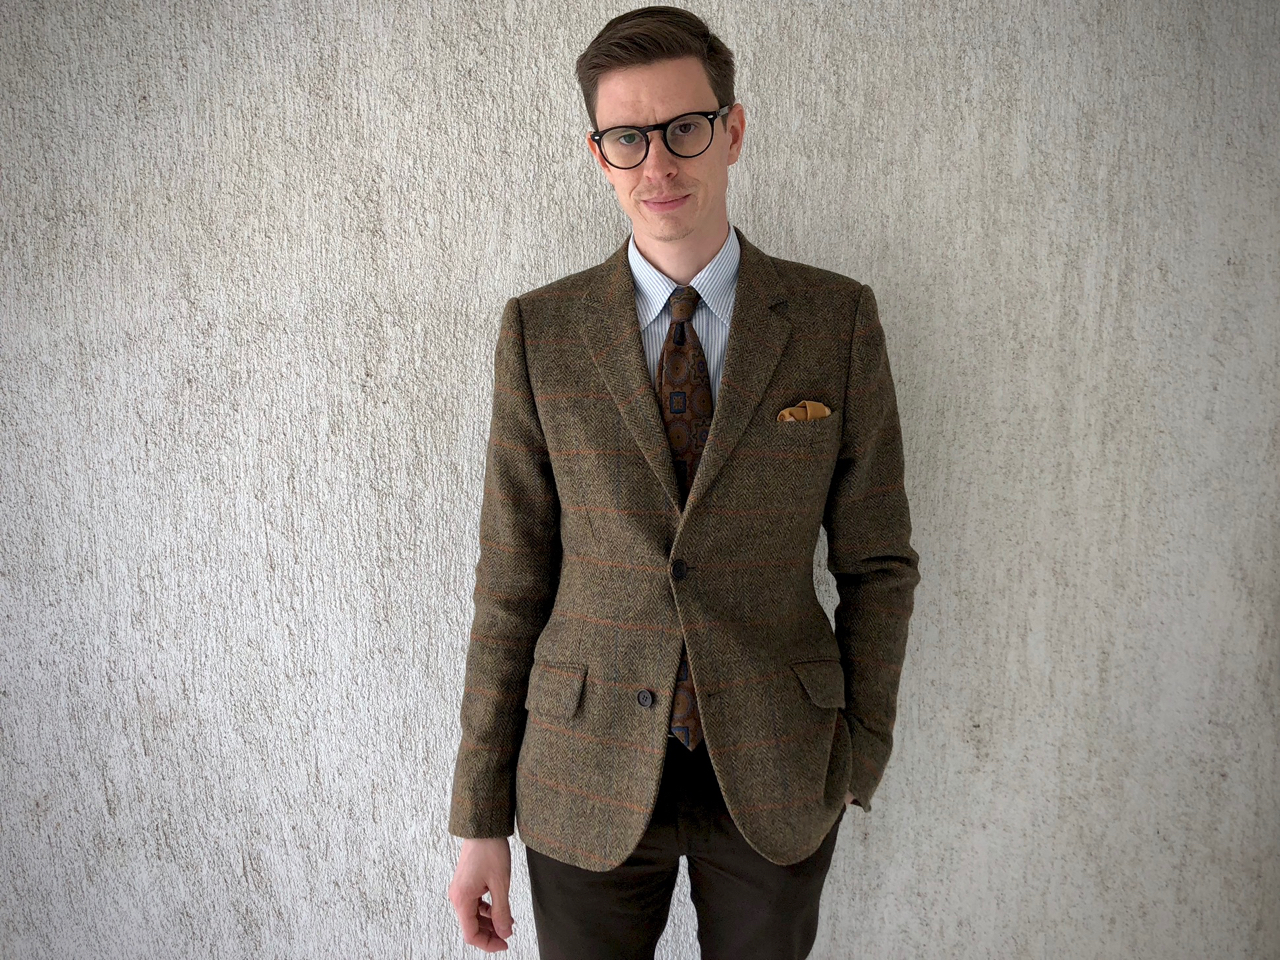 gentlemanstyle-ivy-style-stilus-madder-silk-tie-tweed